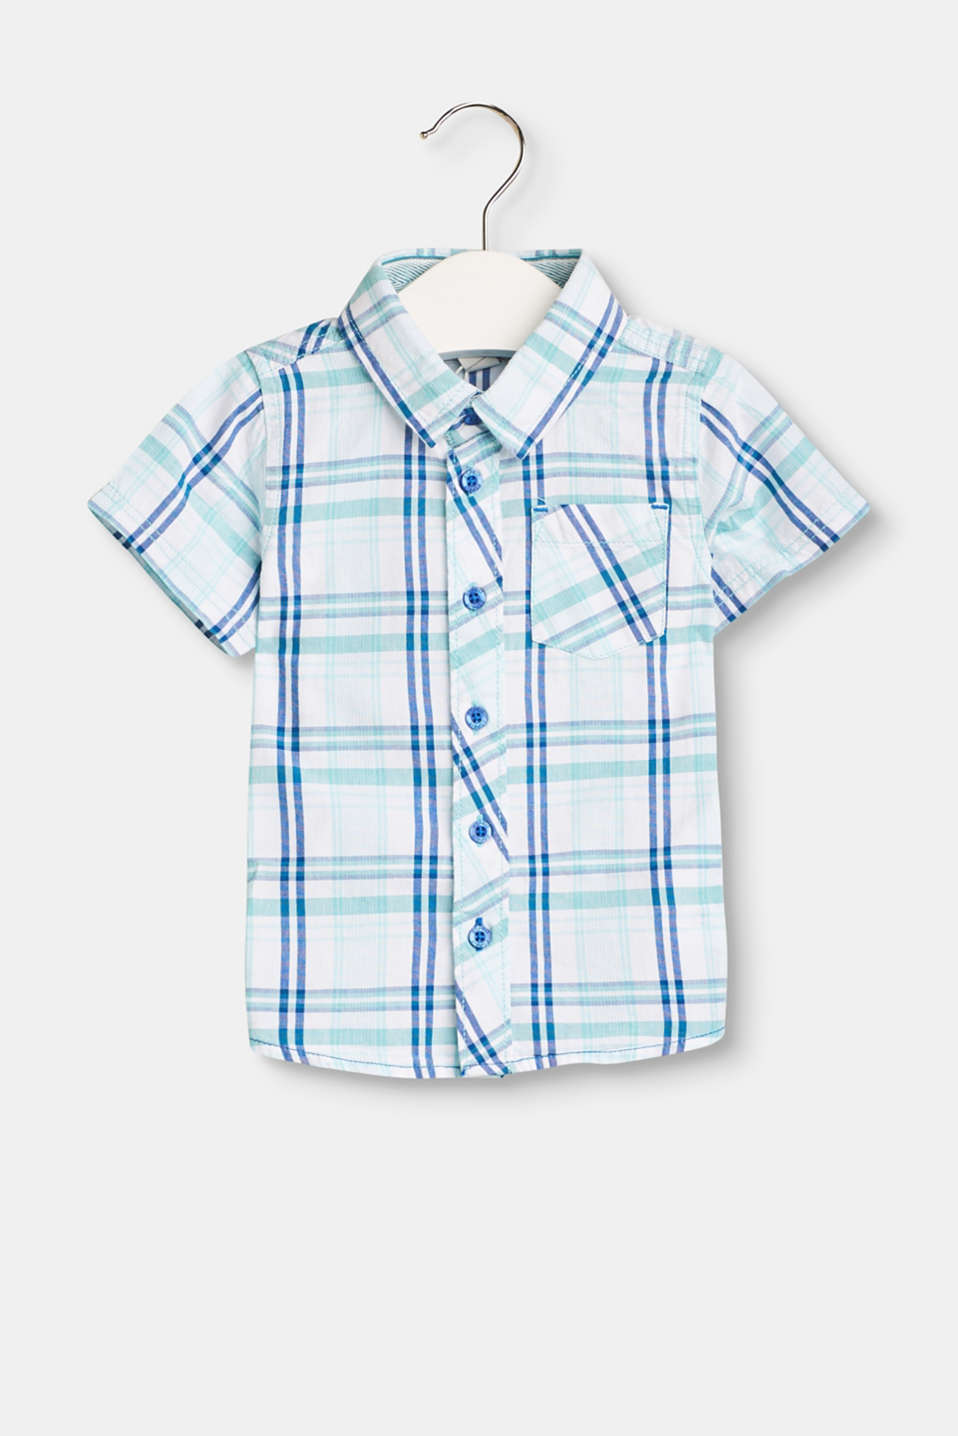 Pair with jeans or tracksuit bottoms: you will always look cool in this short sleeve check shirt in pure cotton!